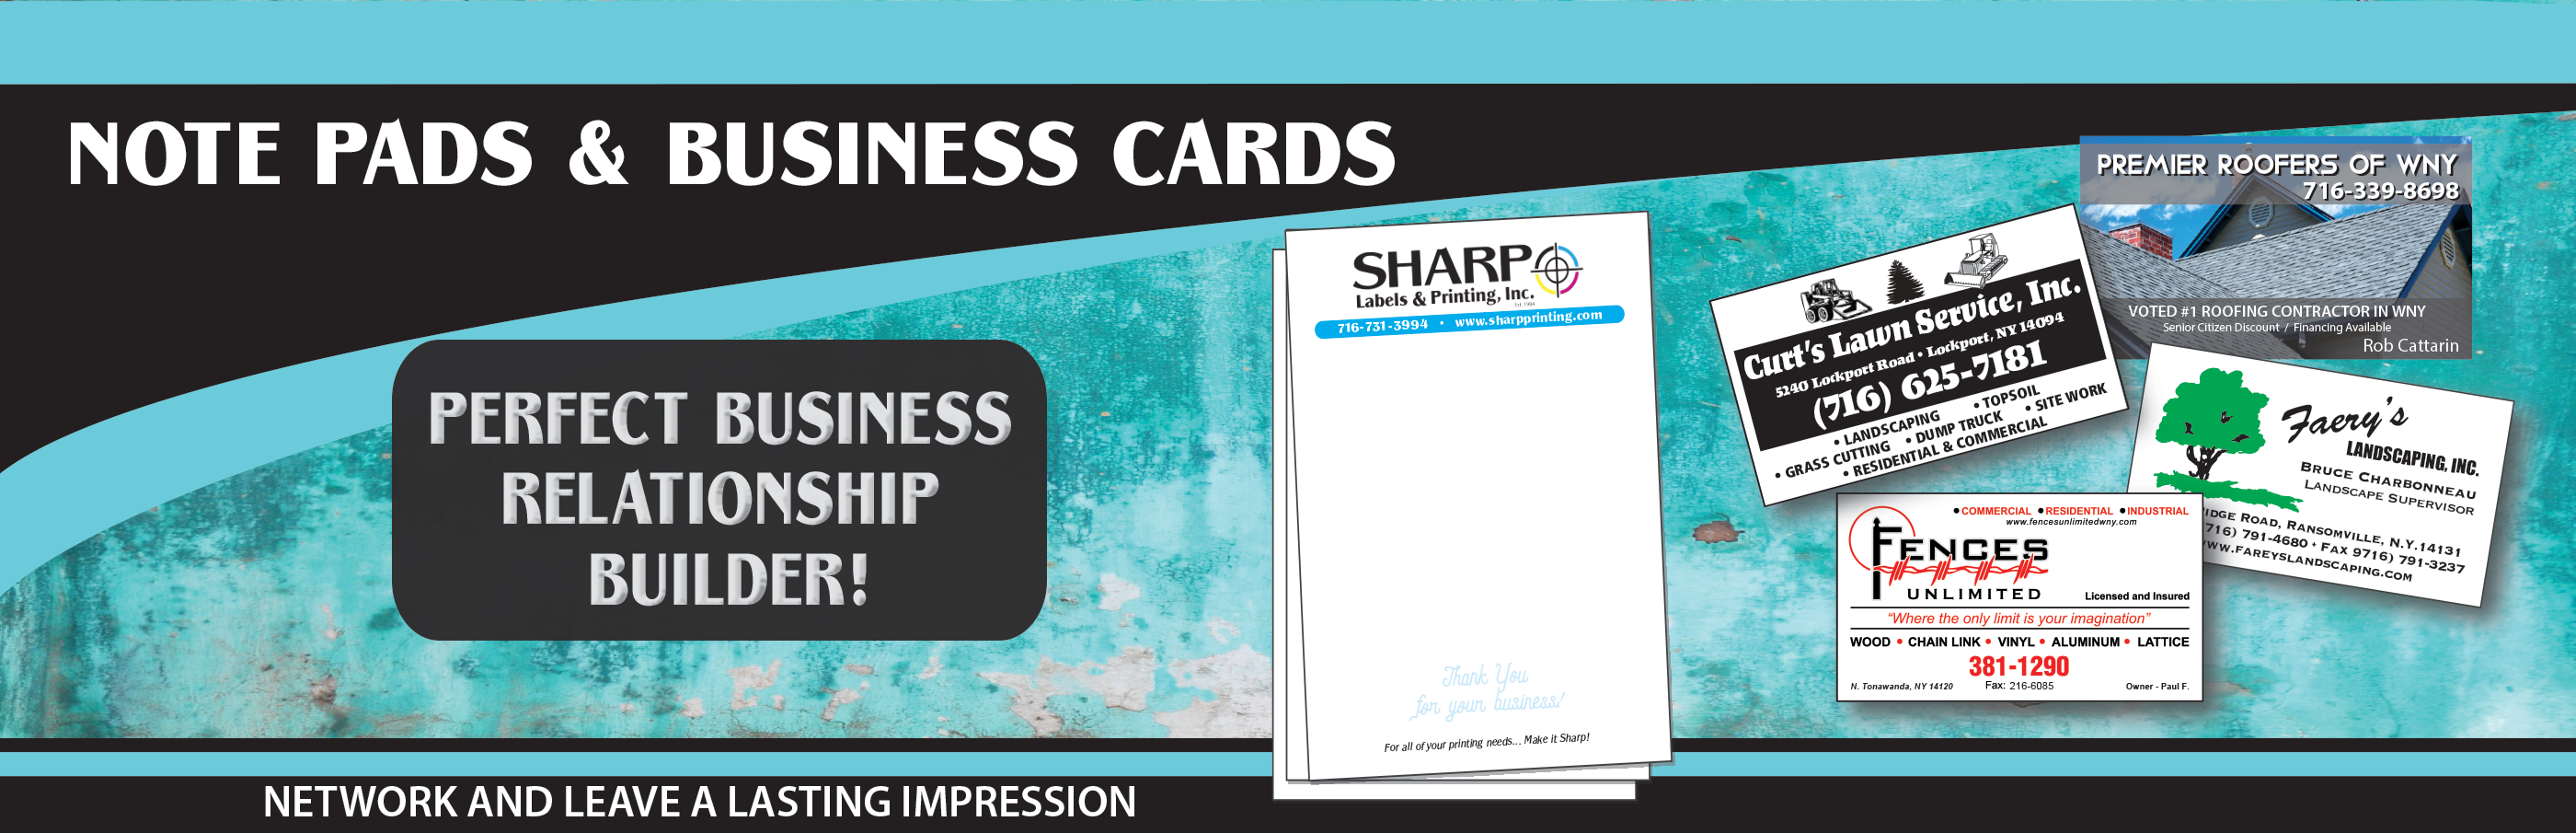 Note Pads & Business Cards